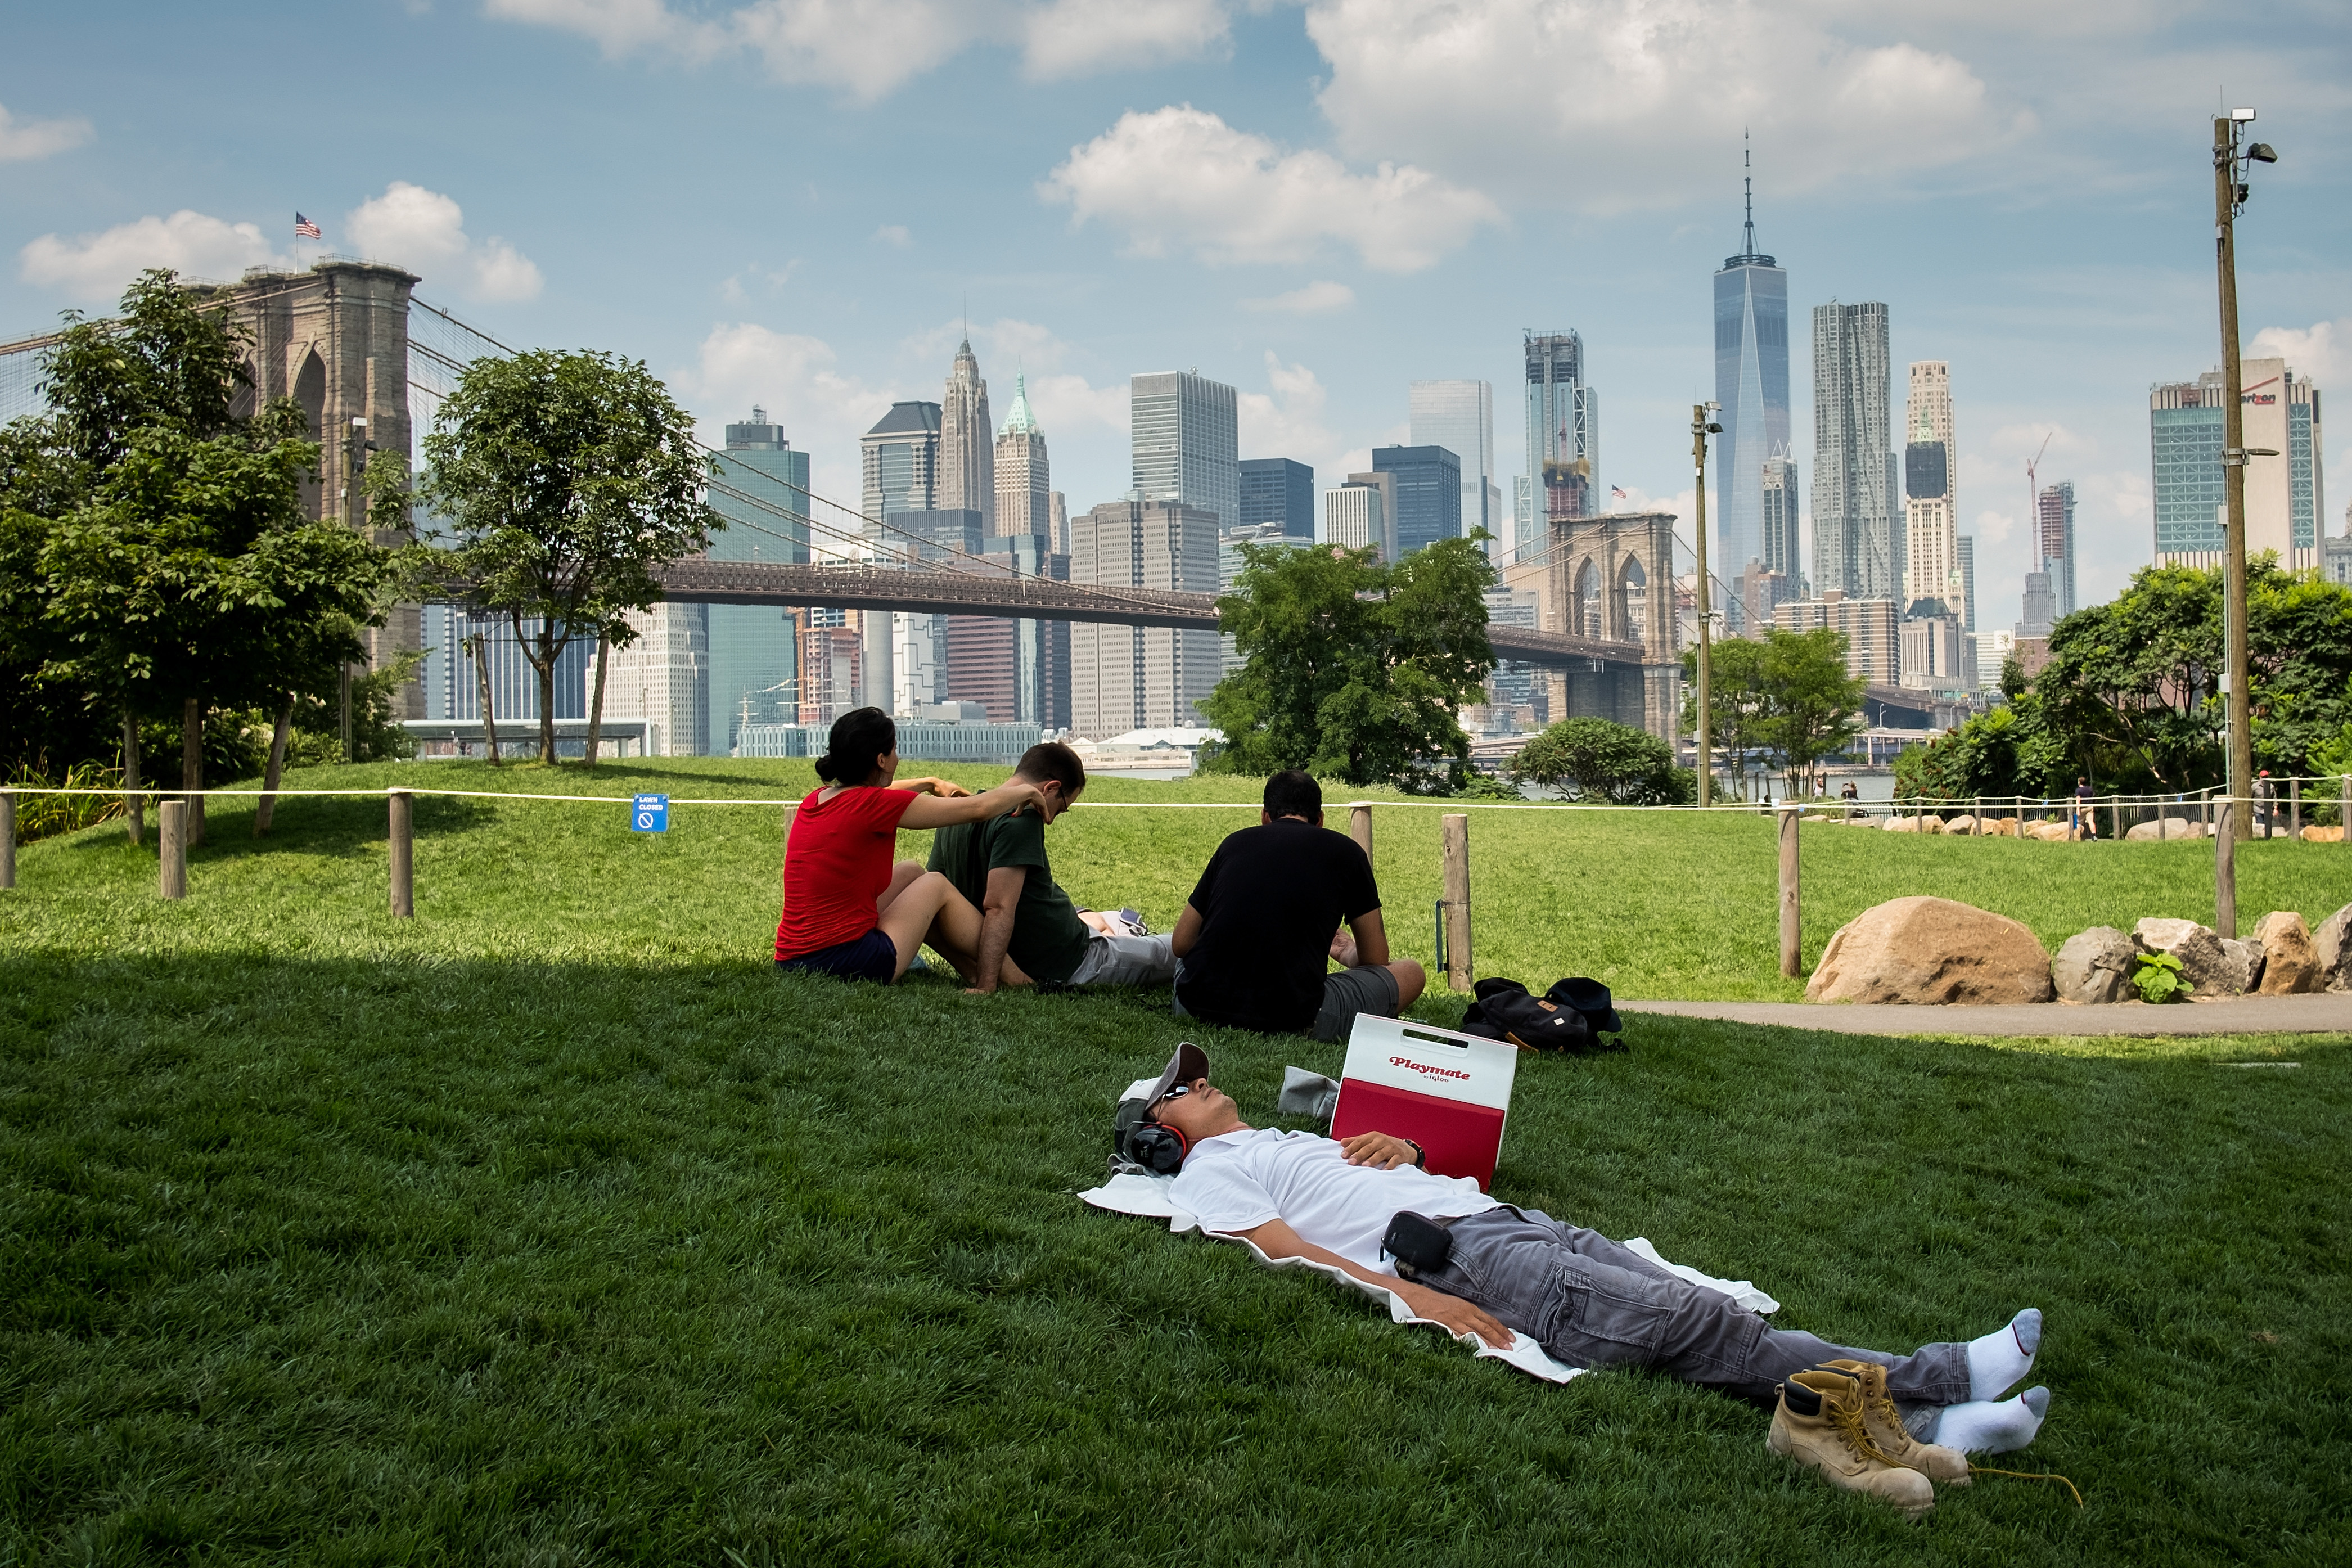 Extreme Heat And Humidity Continue To Push Temperatures Into 90's In New York